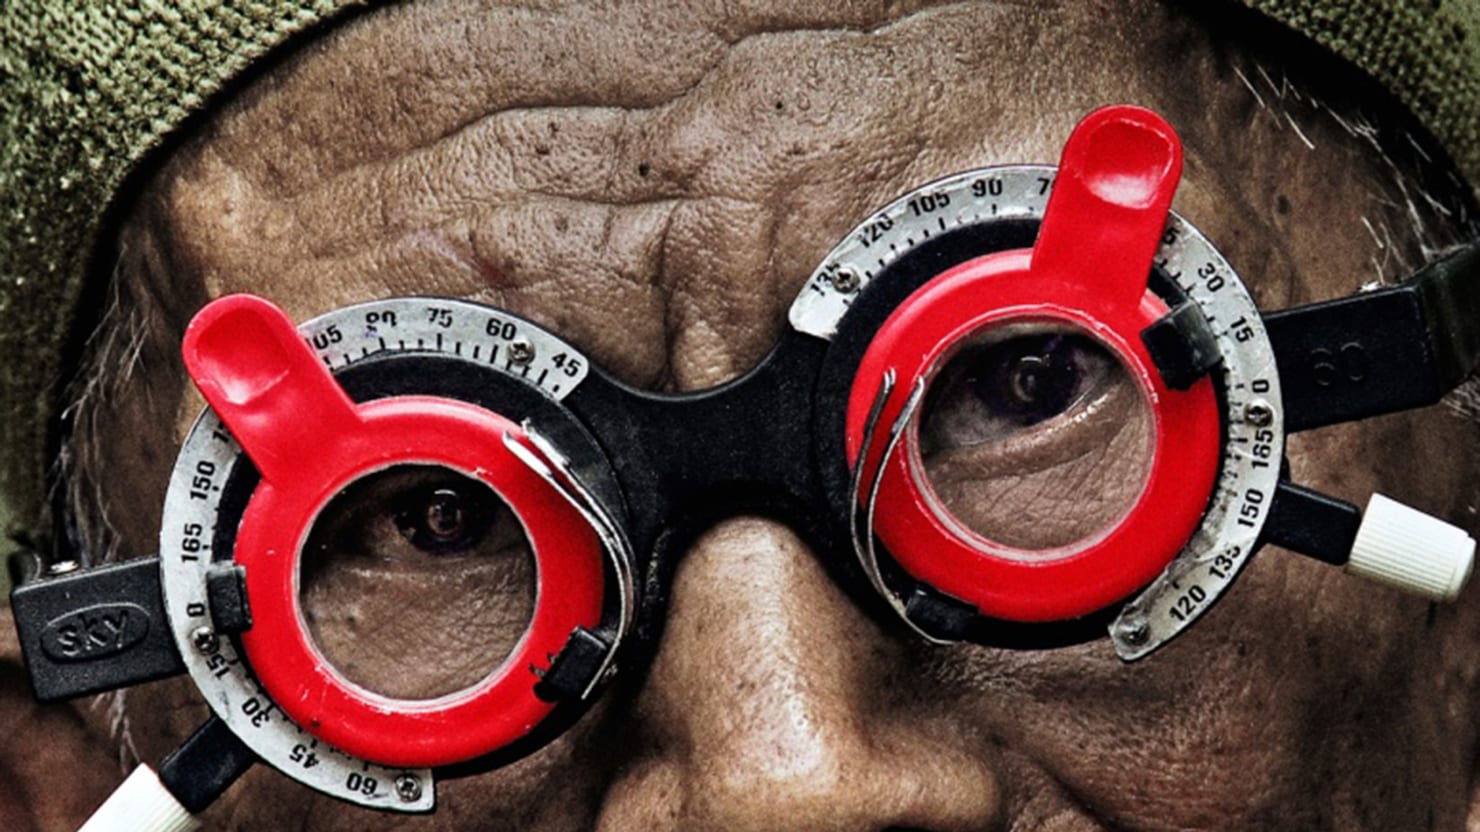 'The Look Of Silence': A Genocide Forces America to Examine Its Damaged Soul